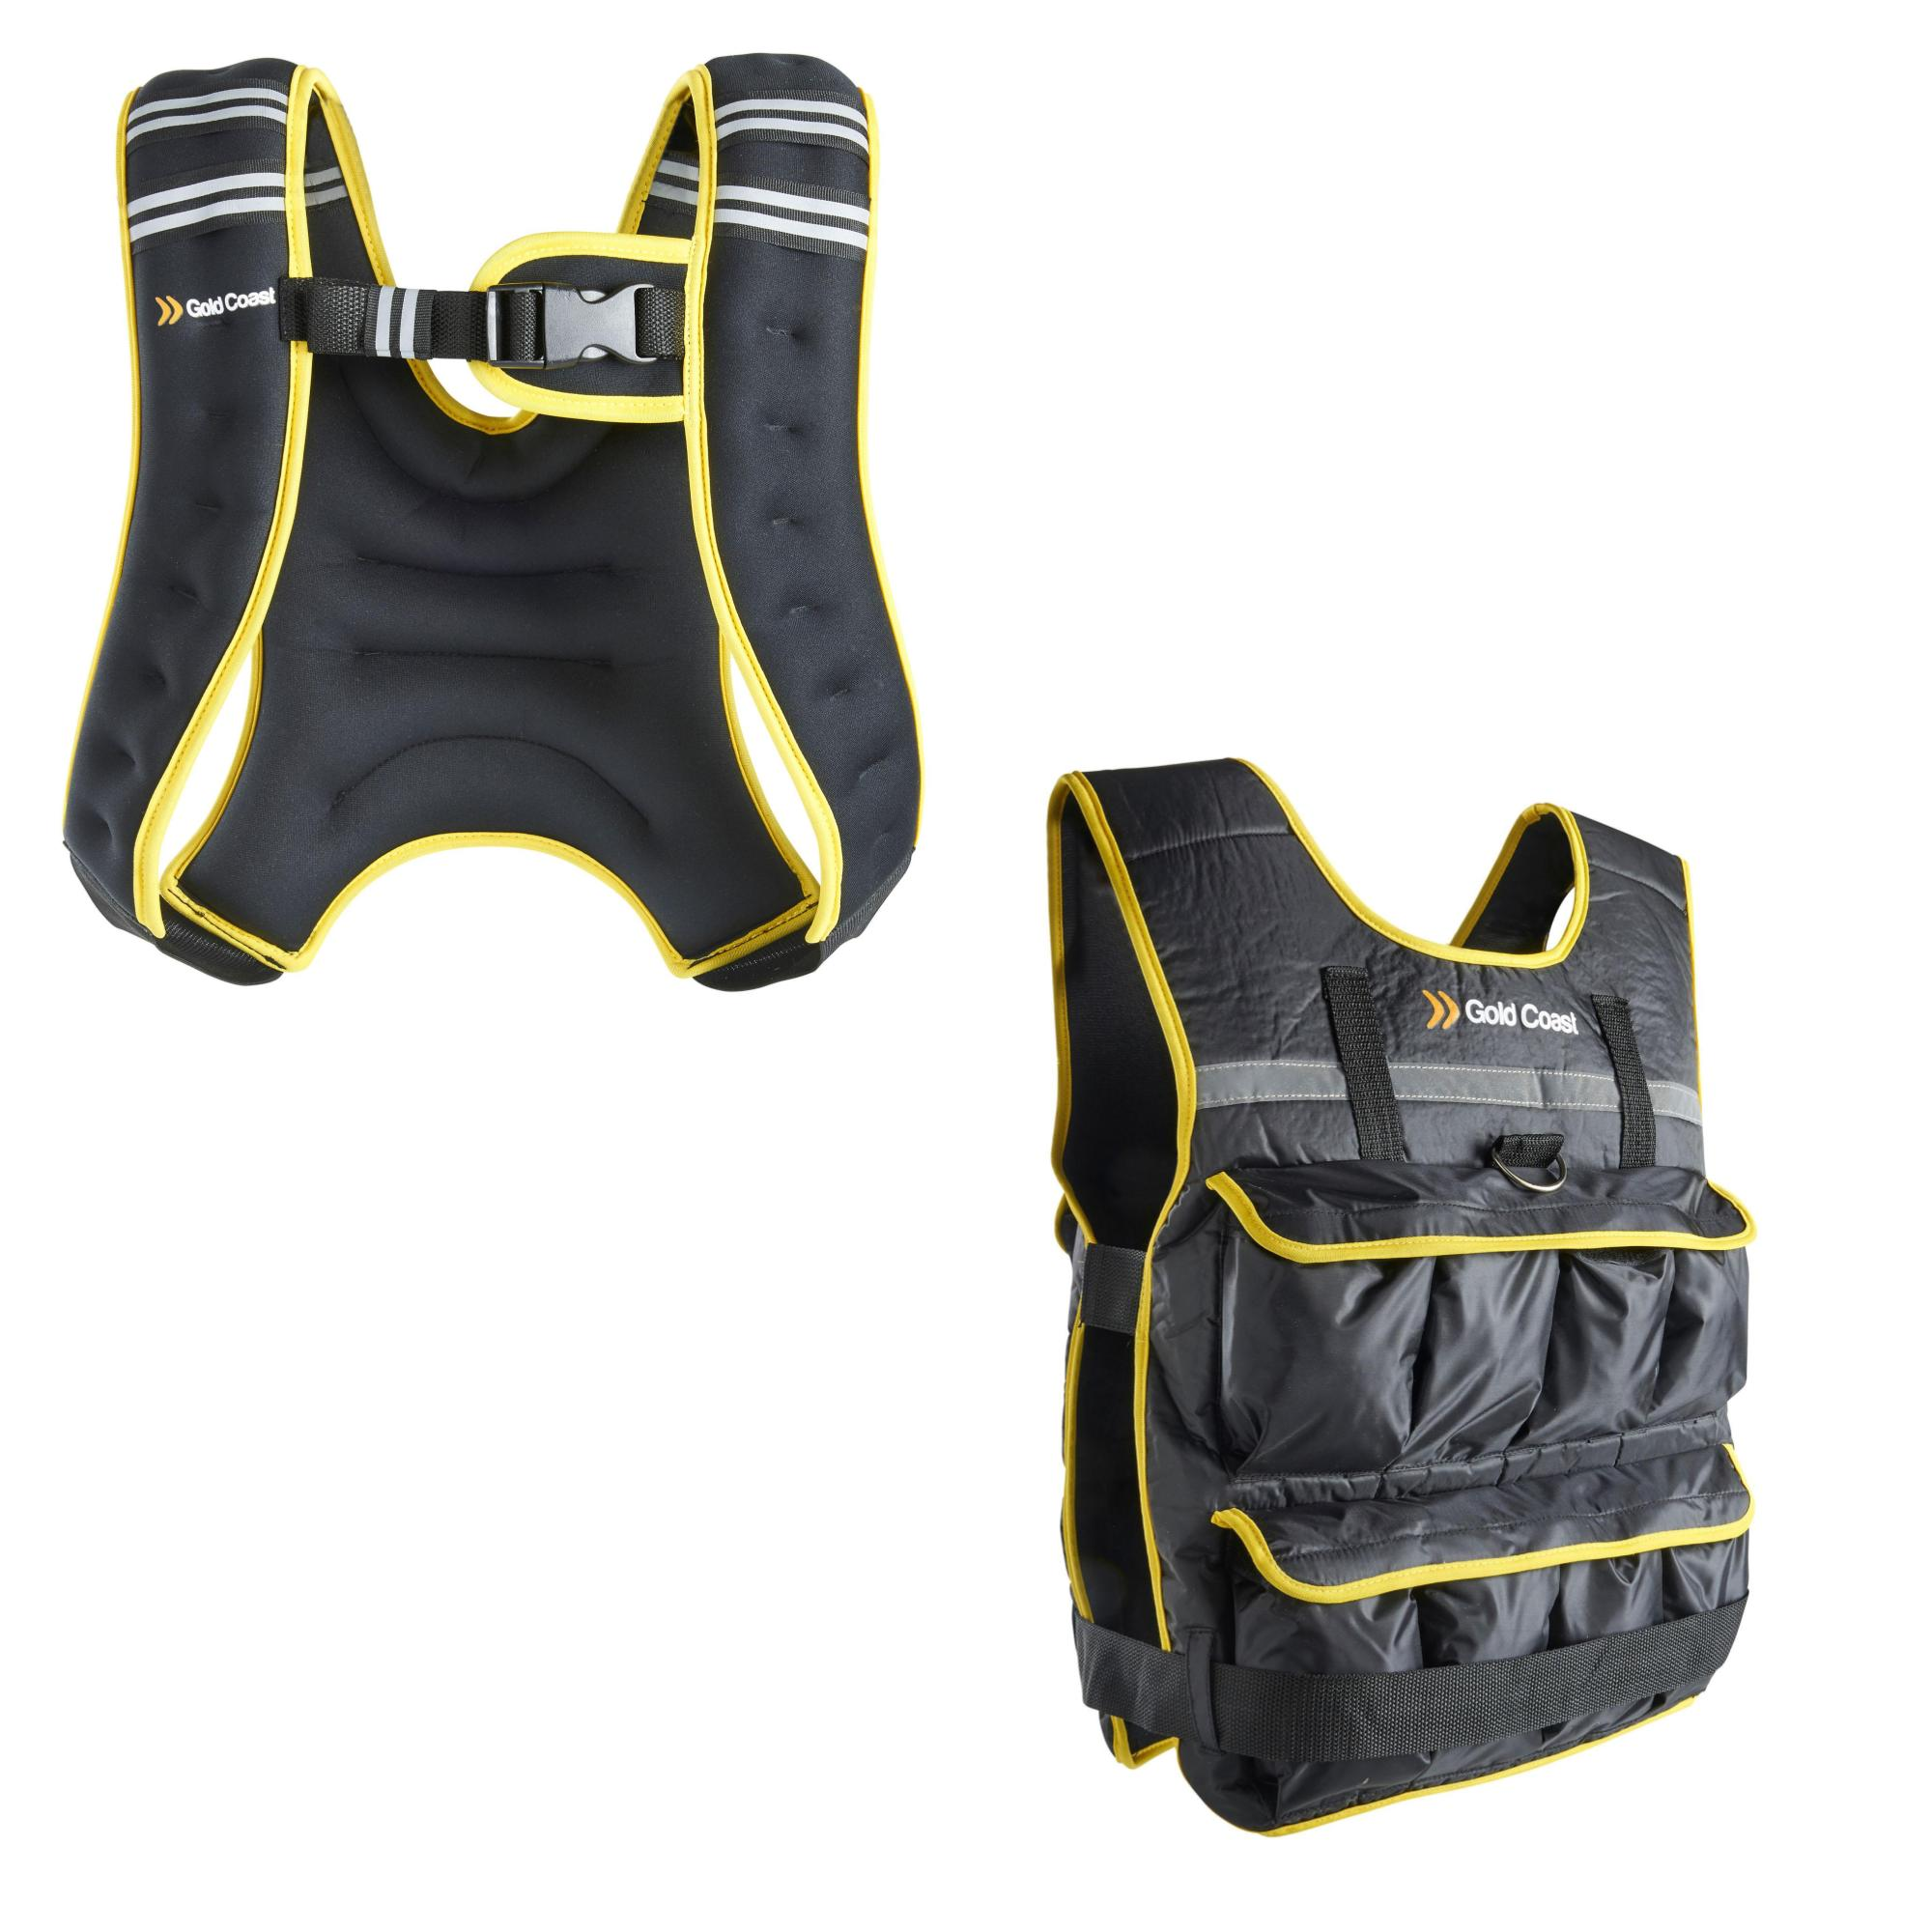 52b538aa Sentinel Gold Coast 5, 10, 20kg Adjustable Weight Vest – Ideal for Running,  Training